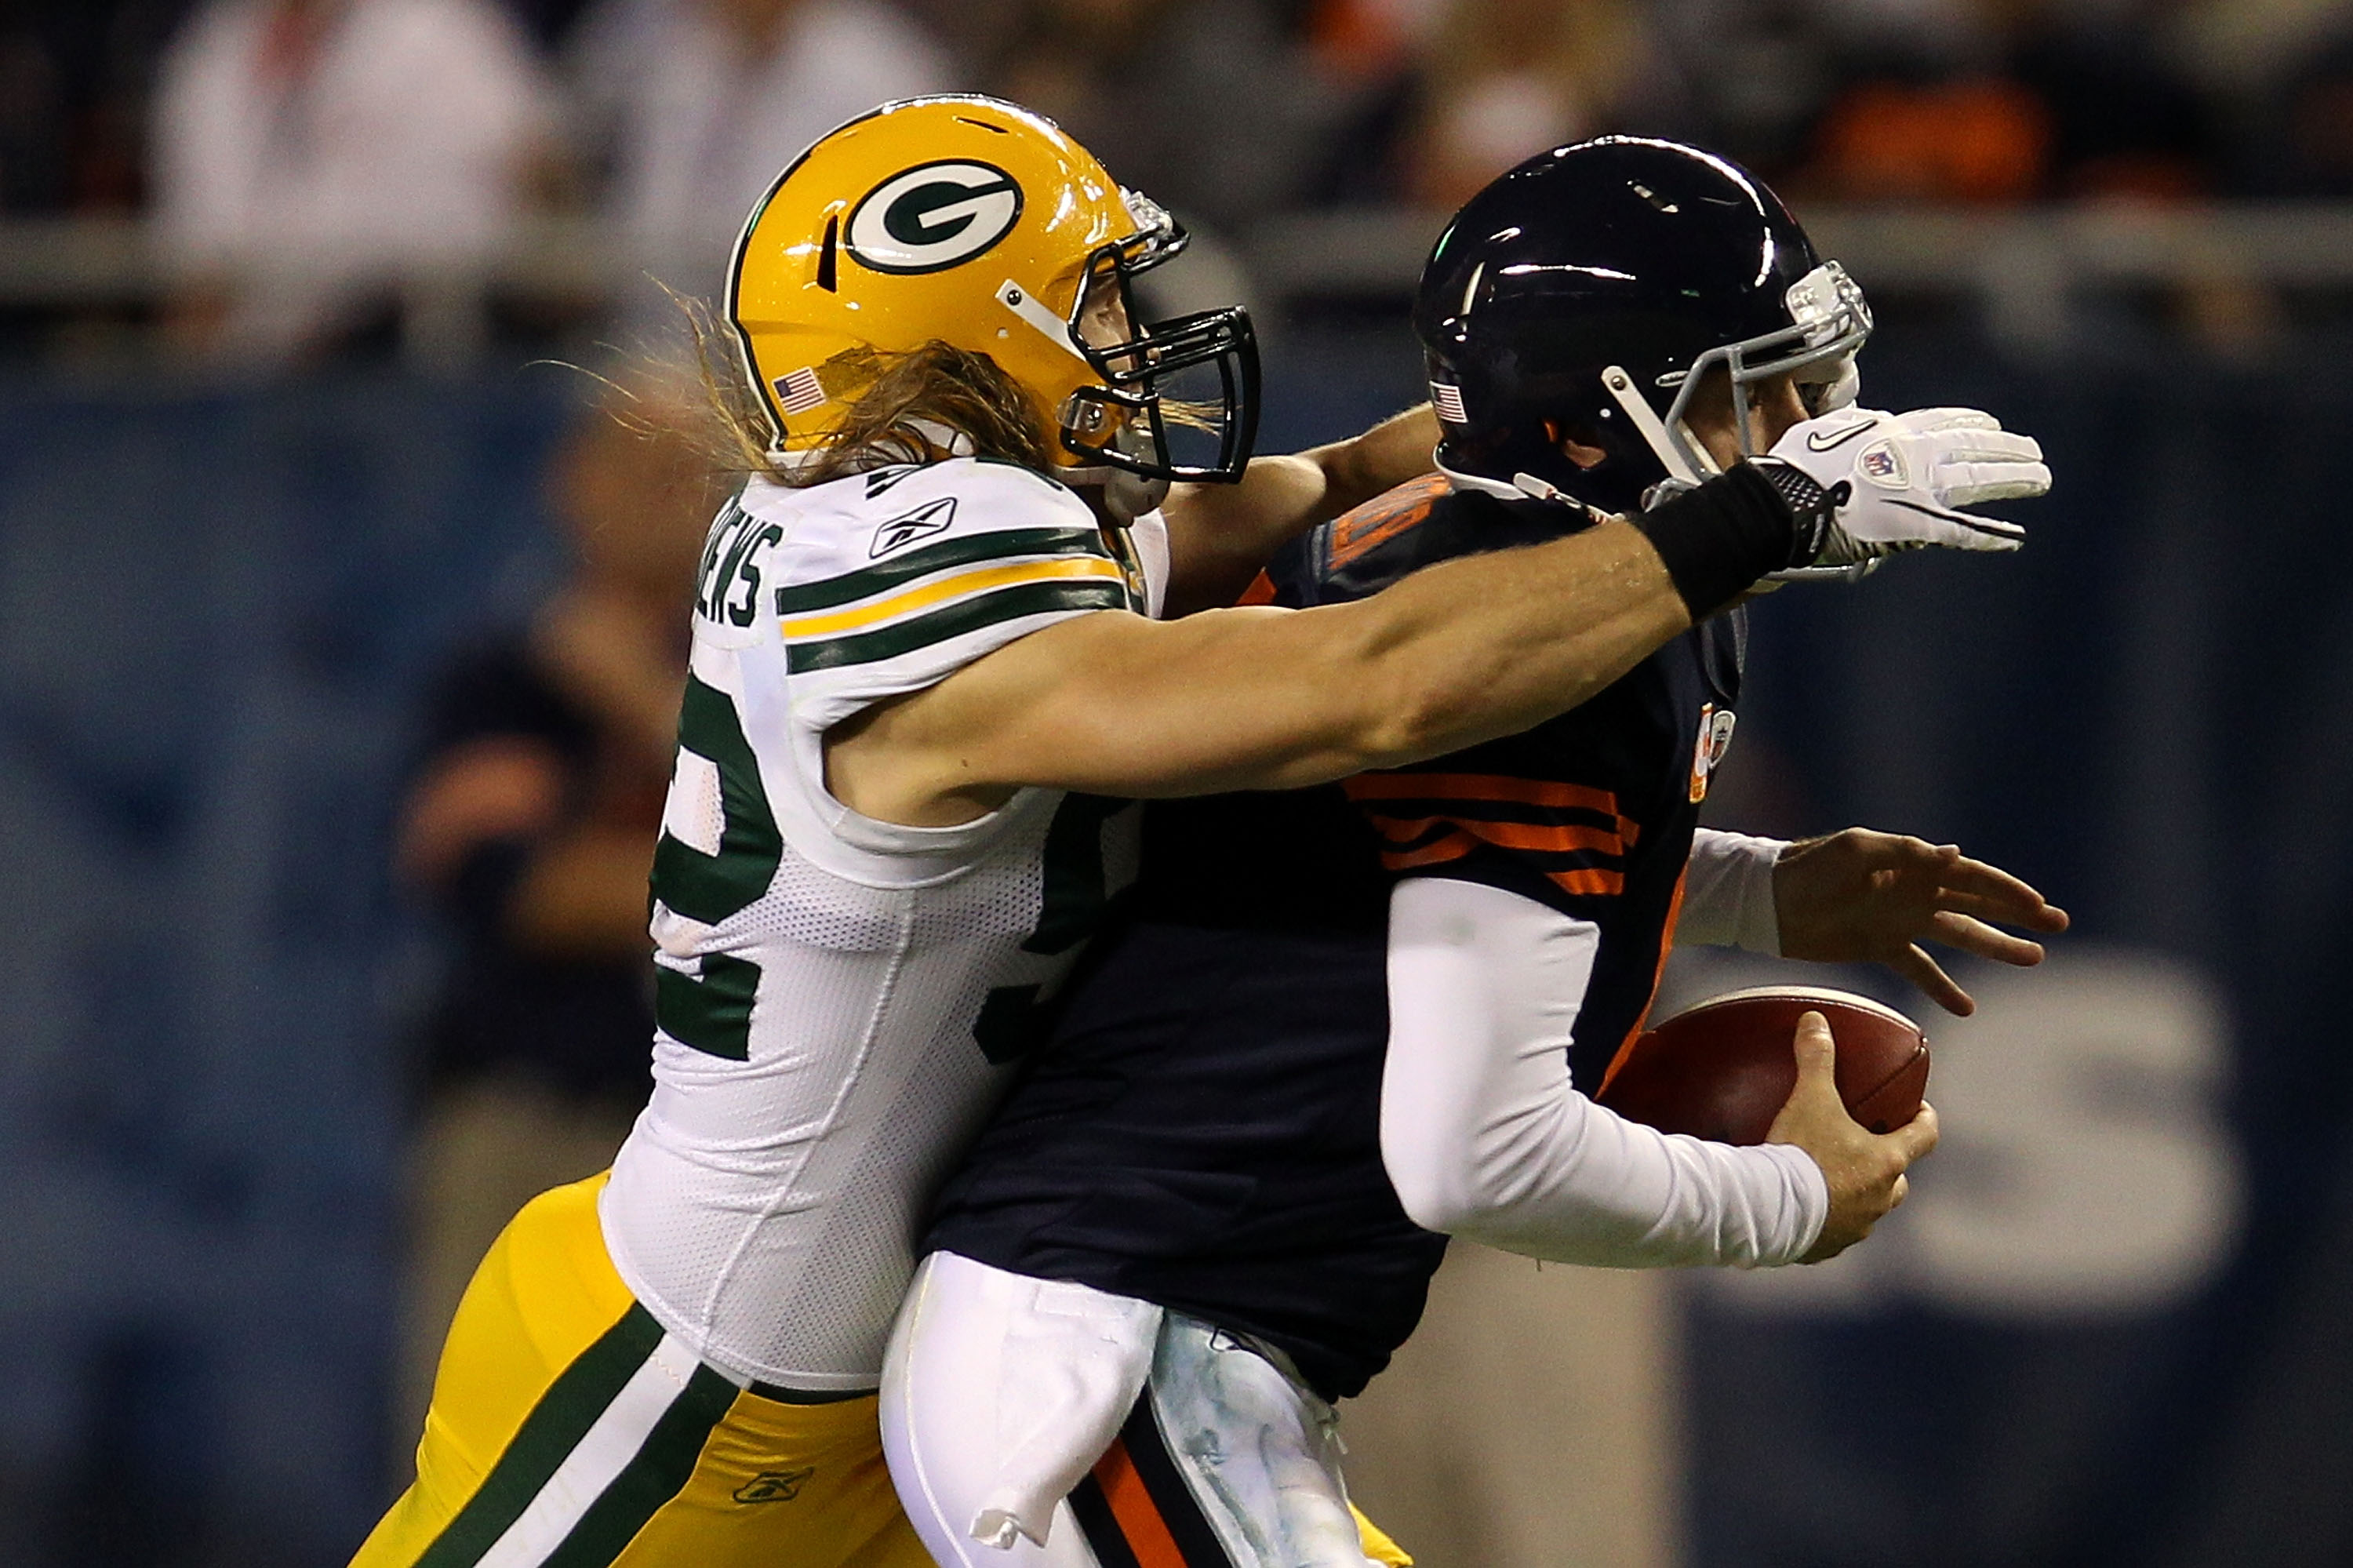 CHICAGO - SEPTEMBER 27:  Clay Matthews #52 of the Green Bay Packers is called for a facemask as he pulls down Jay Cutler #6 of the Chicago Bears in the first quarter at Soldier Field on September 27, 2010 in Chicago, Illinois.  (Photo by Jonathan Daniel/G